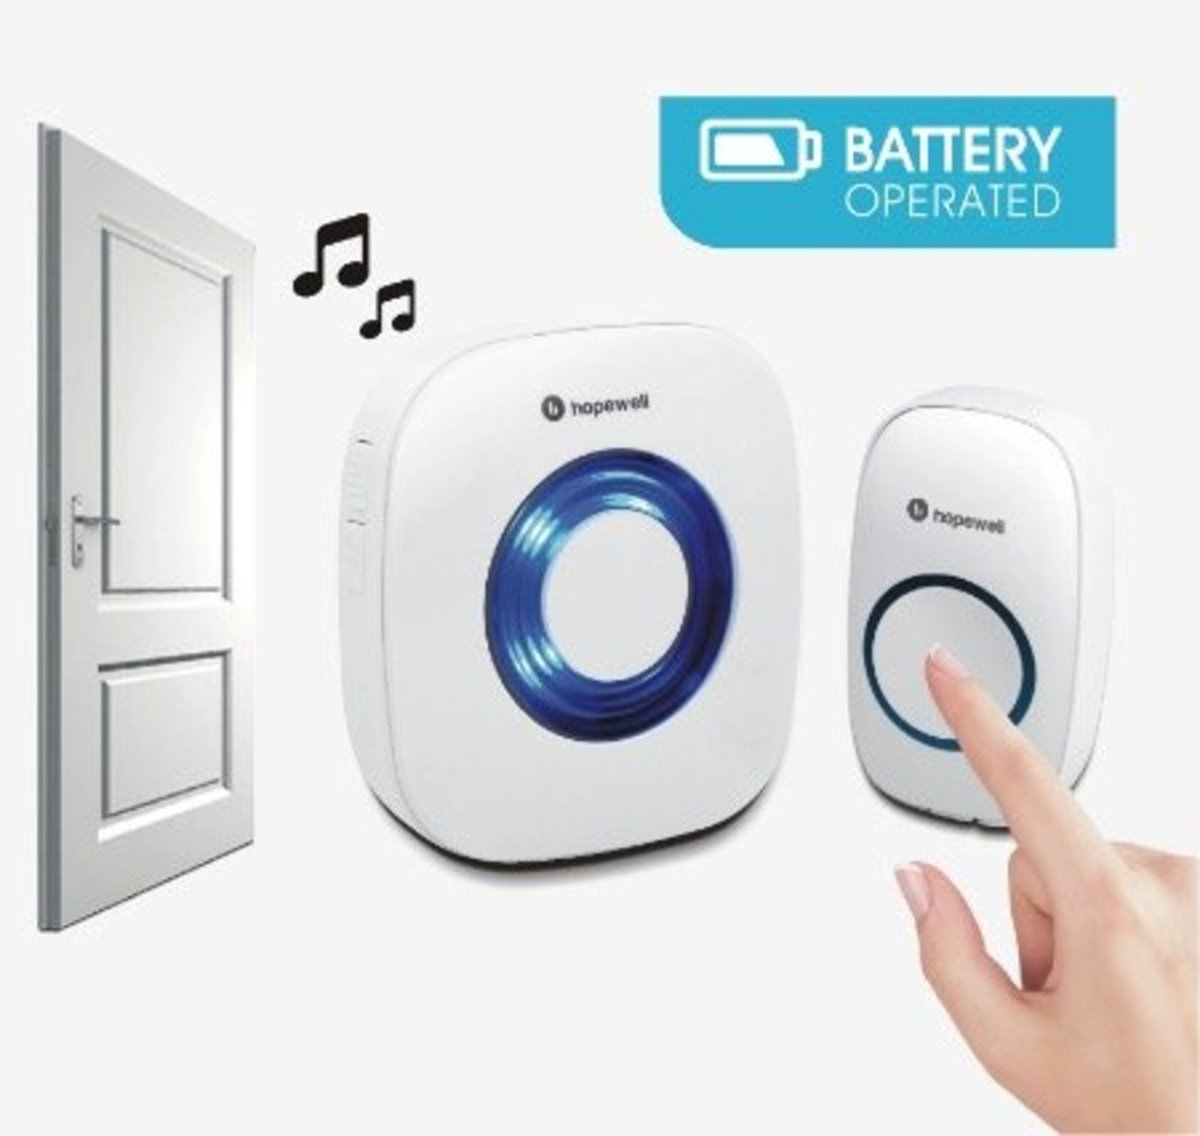 200m Battery Operated Wireless Doorbell[Twin Pack]